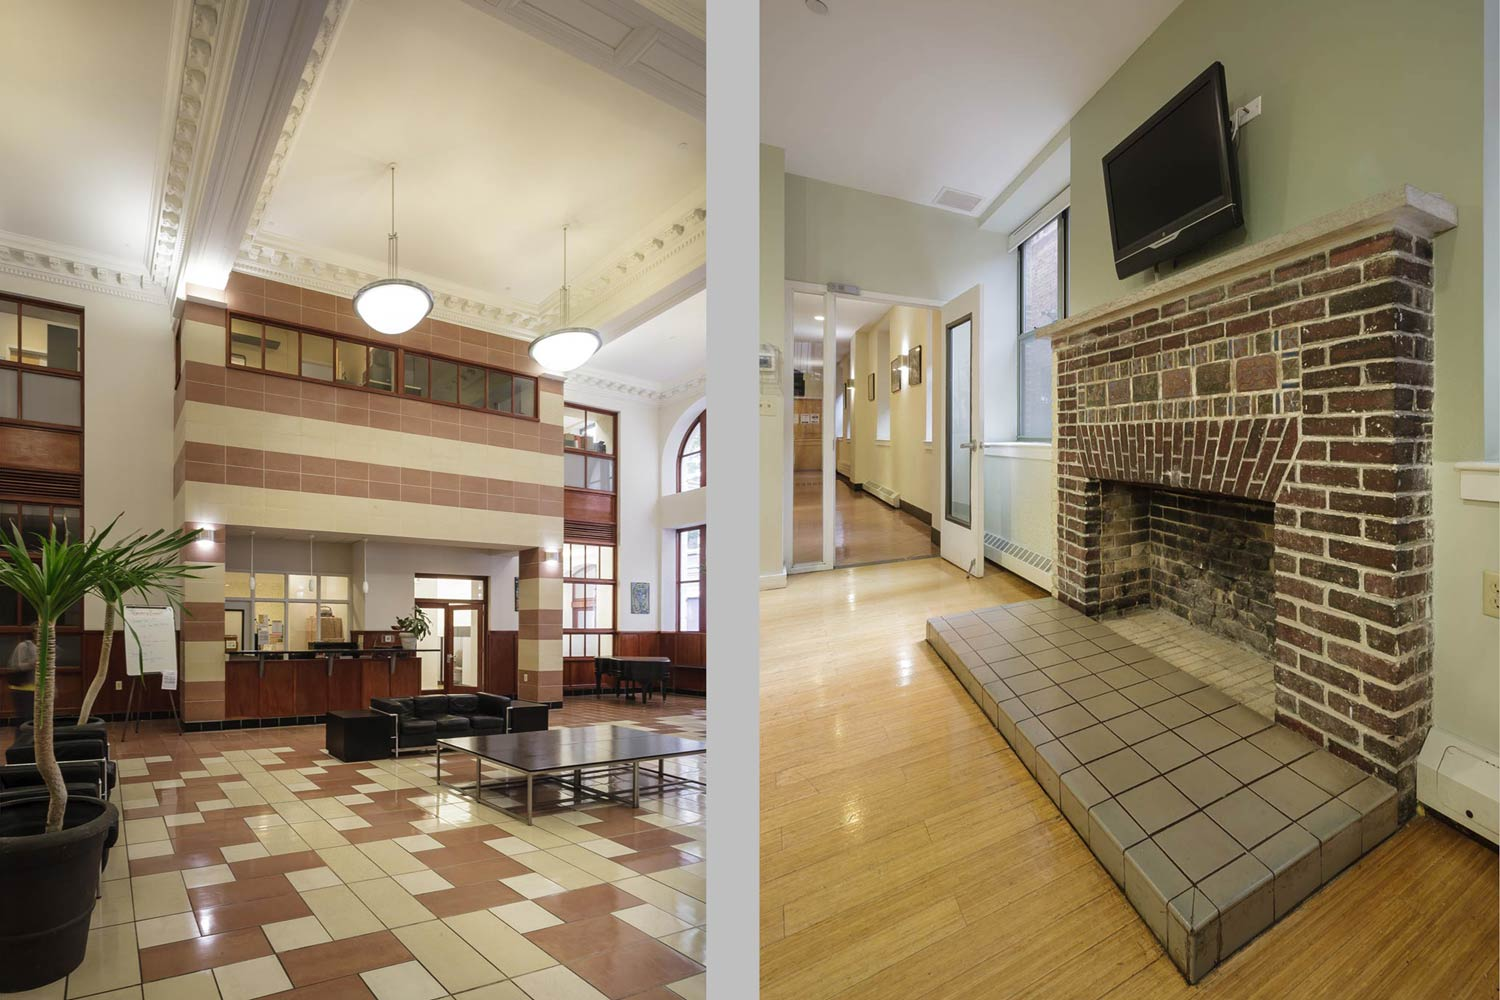 Rehabilitation of the former McBurney YMCA included the reconstruction of the original lobby details.